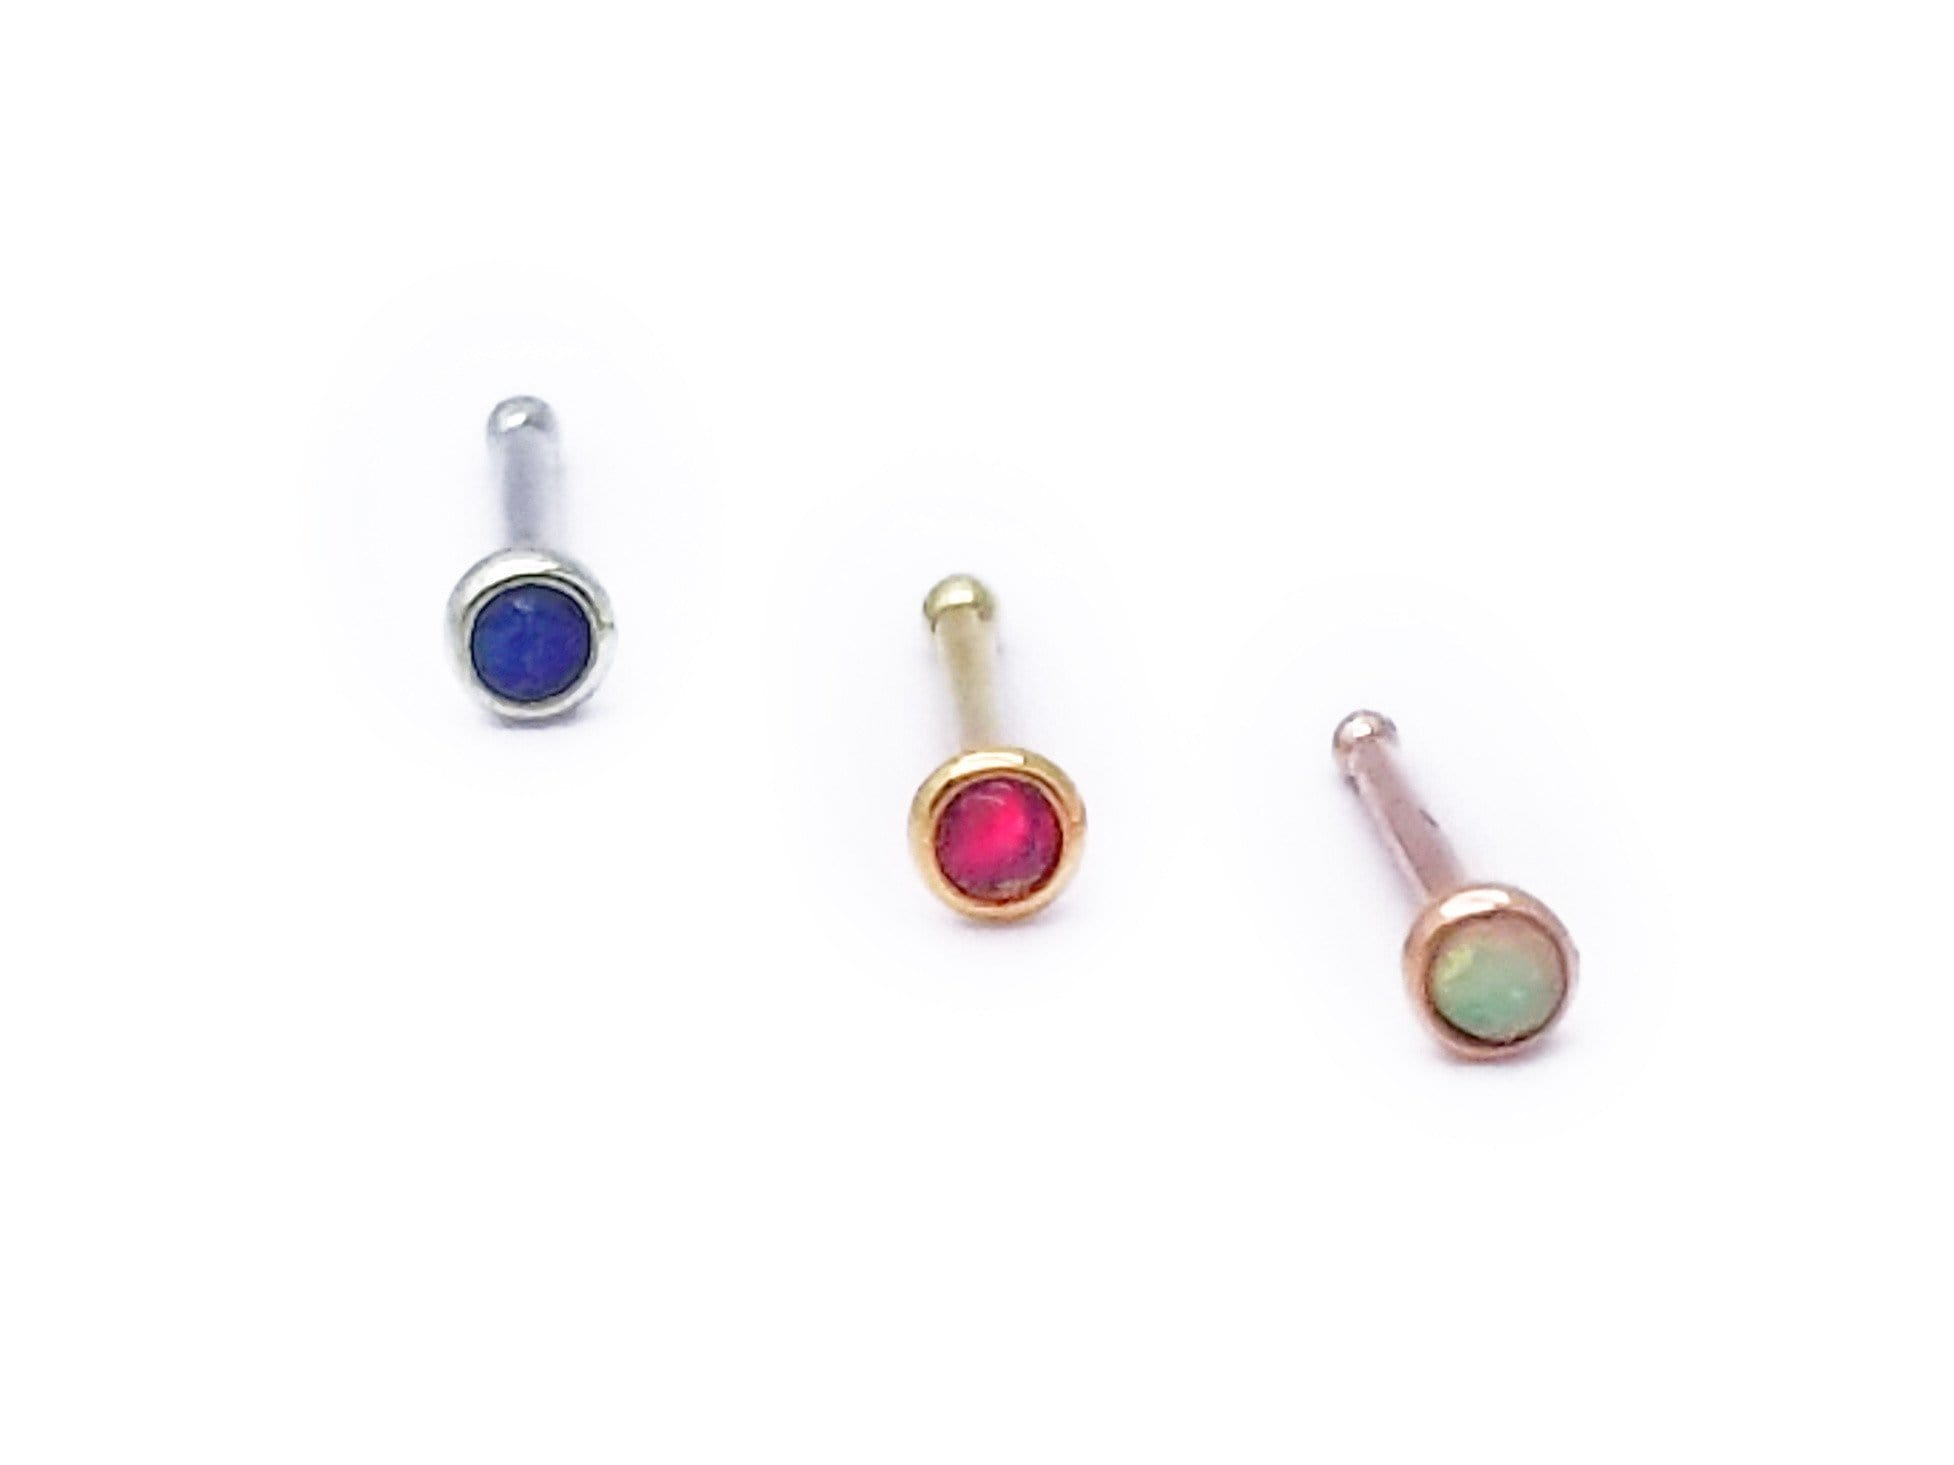 BVLA | 20g Opal Nose Bone - Avanti Body Piercing & Fine Jewelry